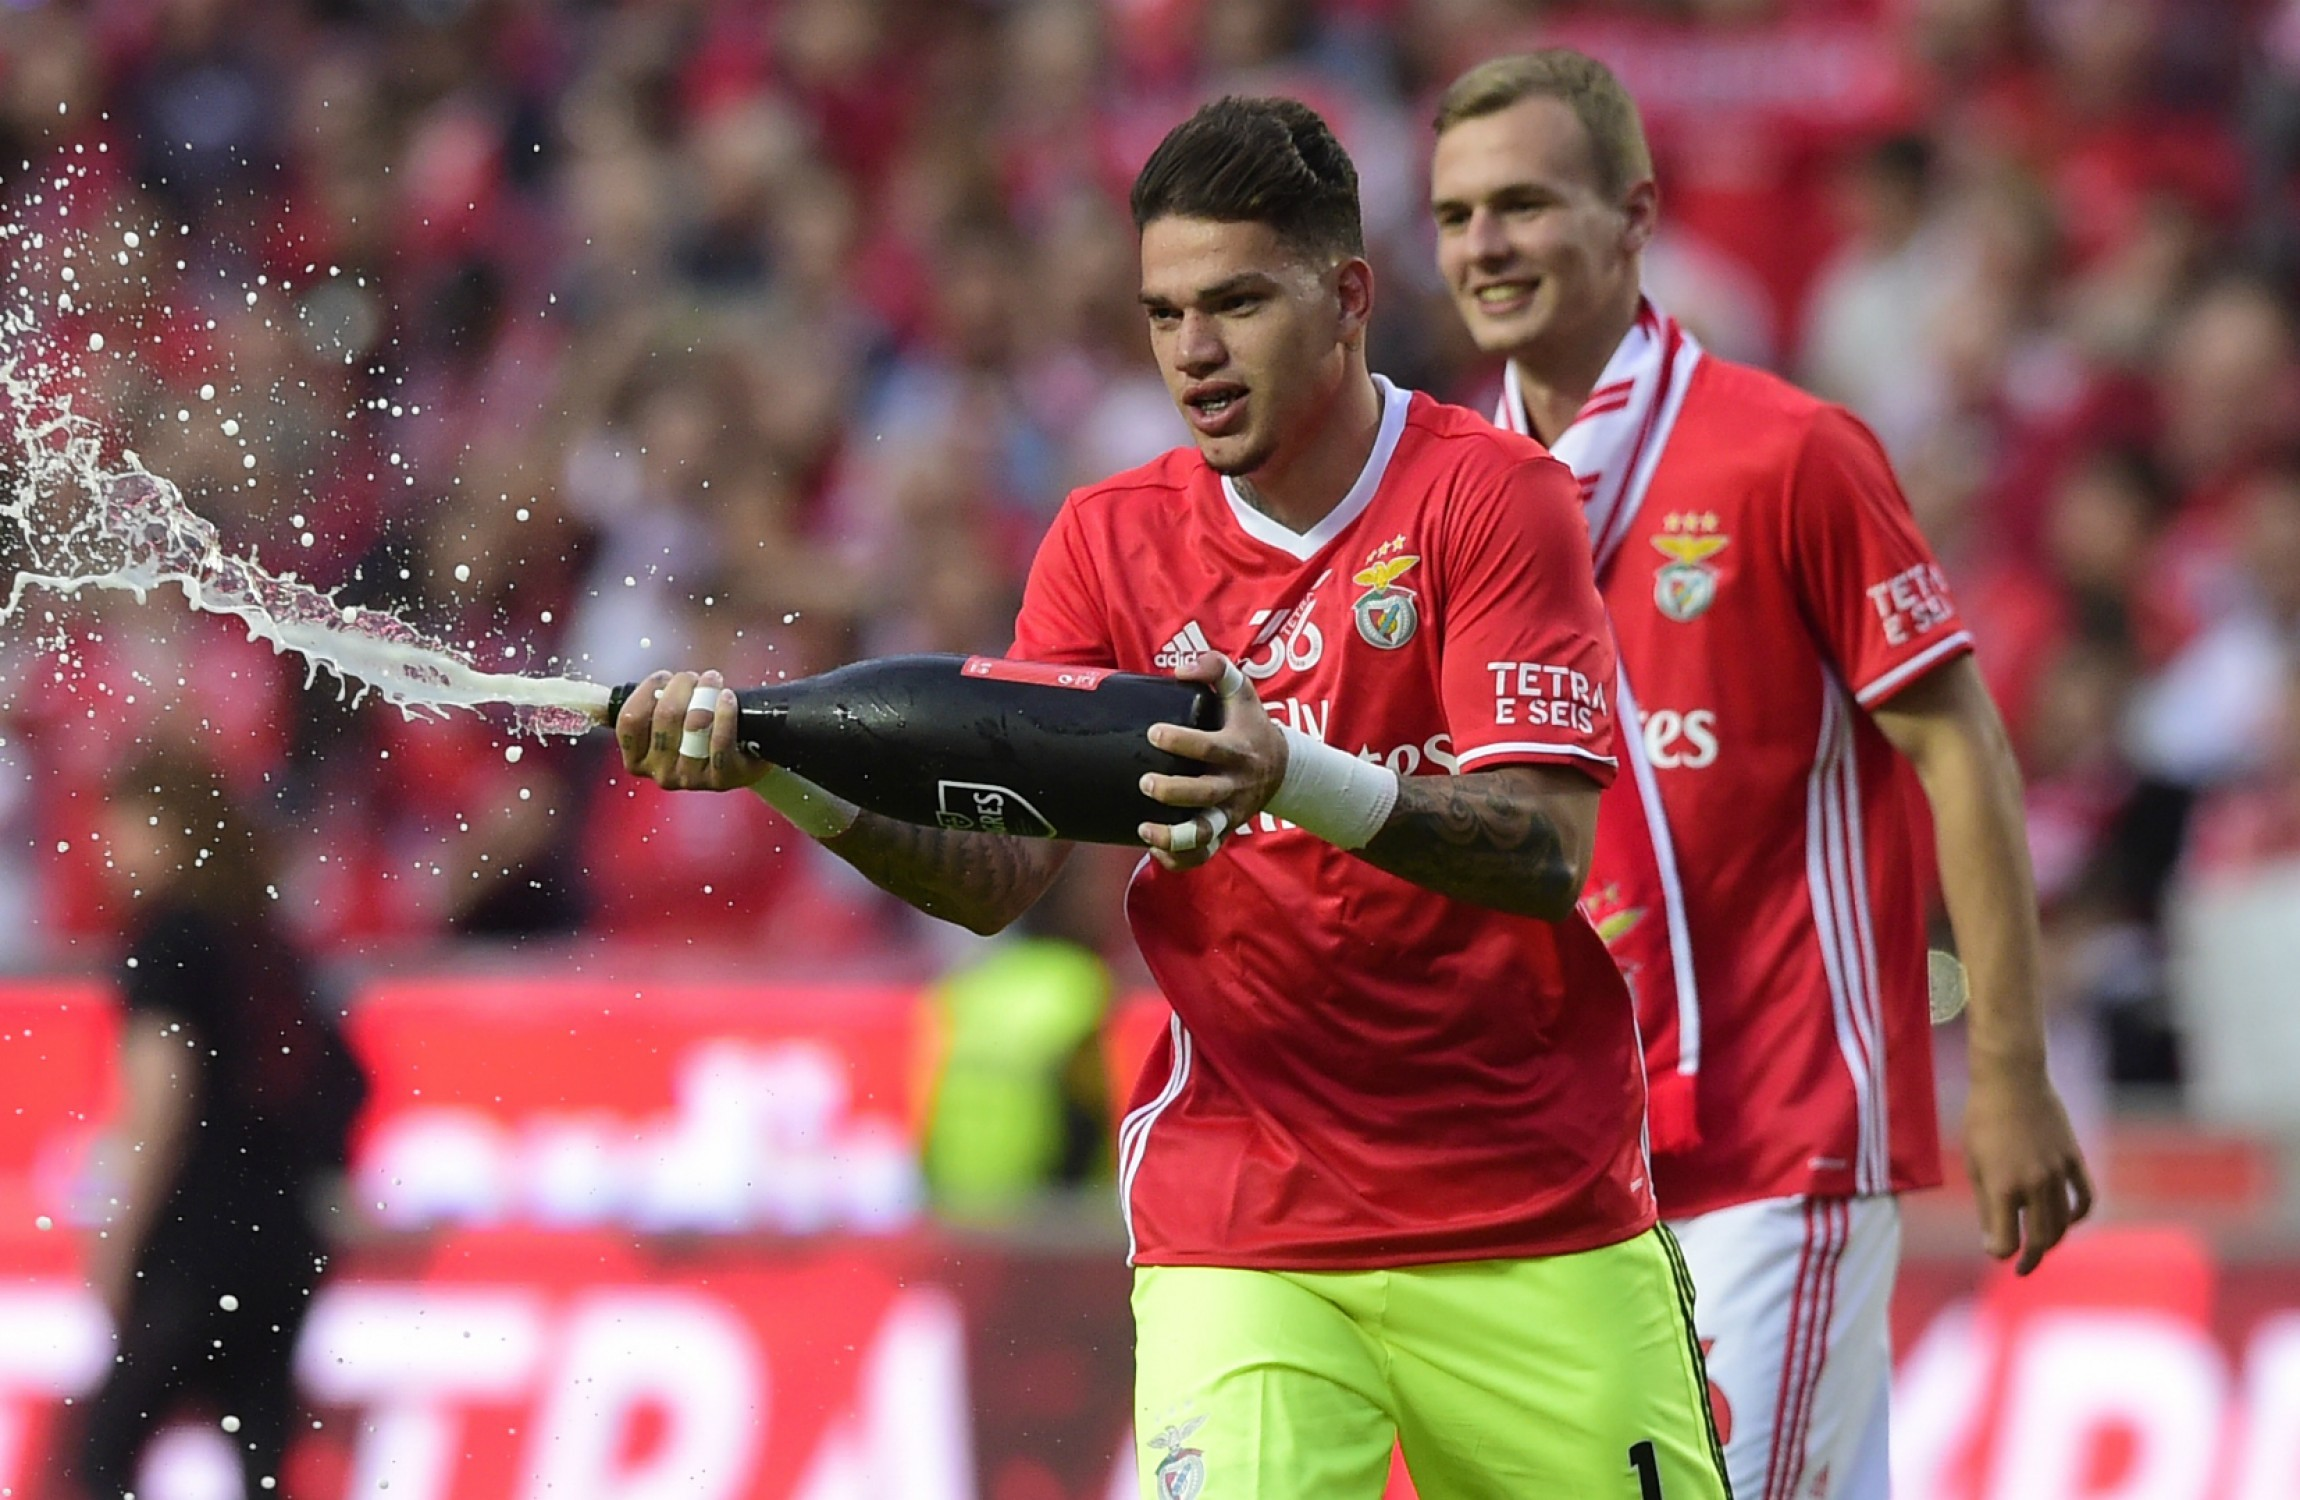 Benfica say goalkeeper Ederson to join Manchester City